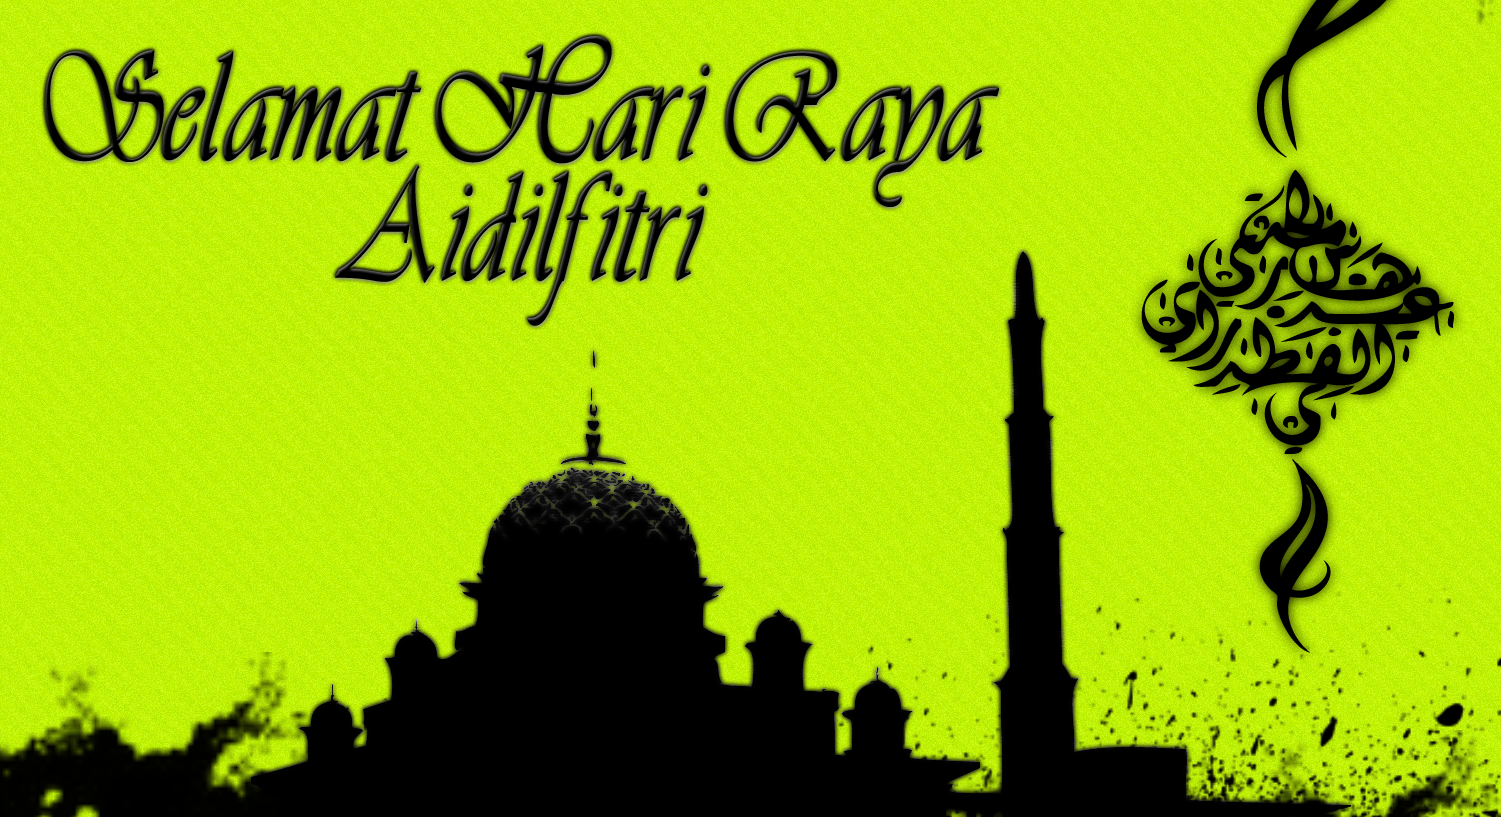 3d HD Wallpapers Raya Aidilfitri